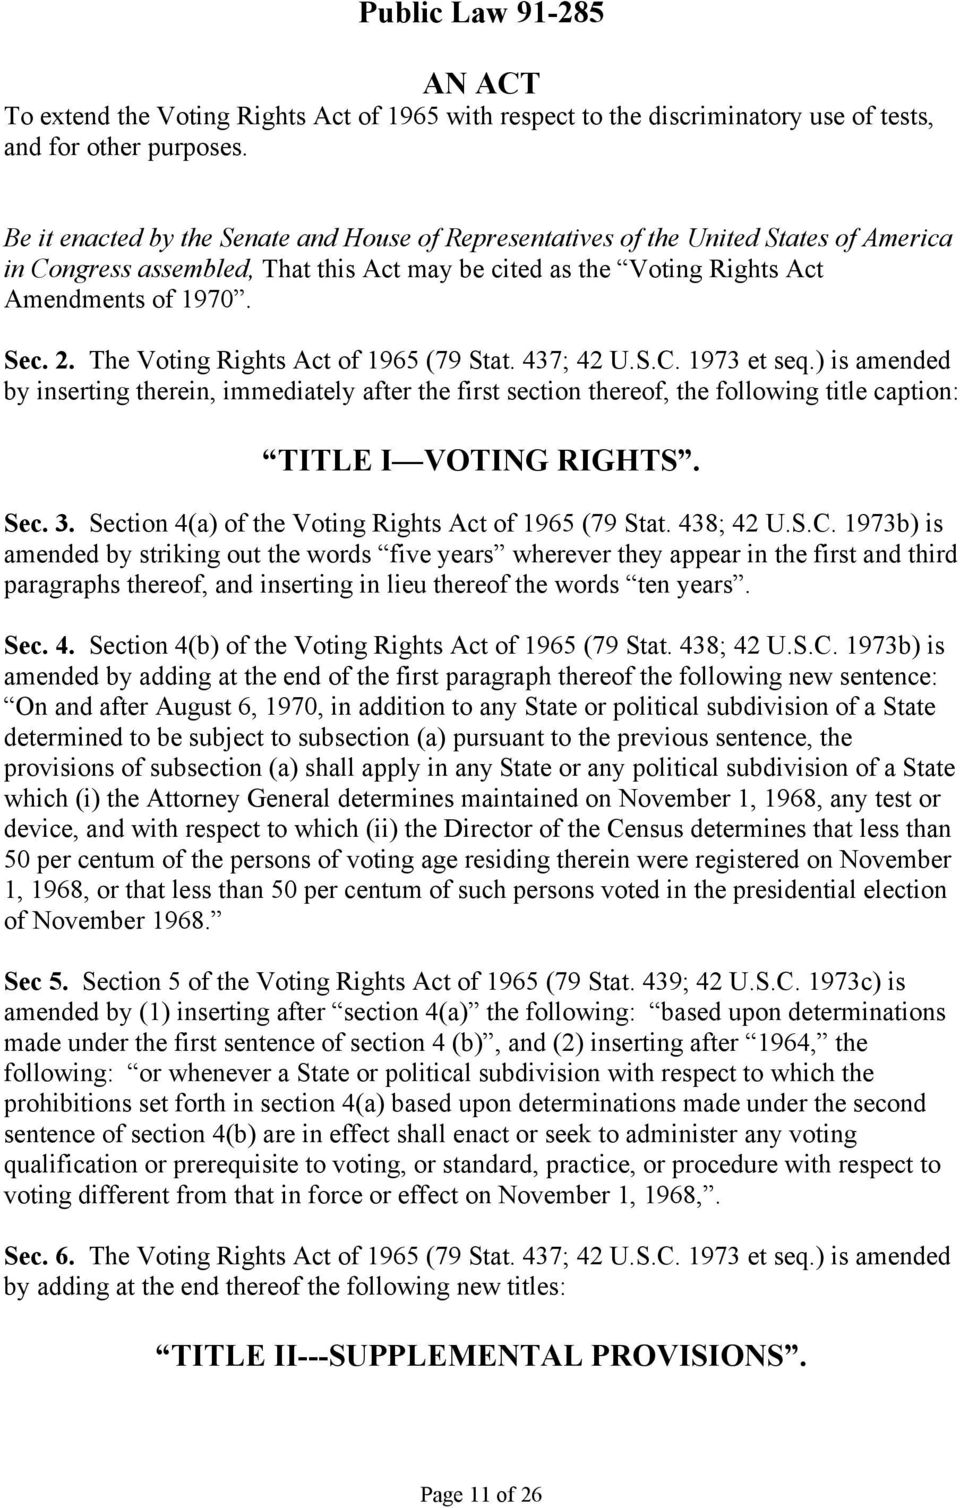 The Voting Rights Act of 1965 (79 Stat. 437; 42 U.S.C. 1973 et seq.) is amended by inserting therein, immediately after the first section thereof, the following title caption: TITLE I VOTING RIGHTS.